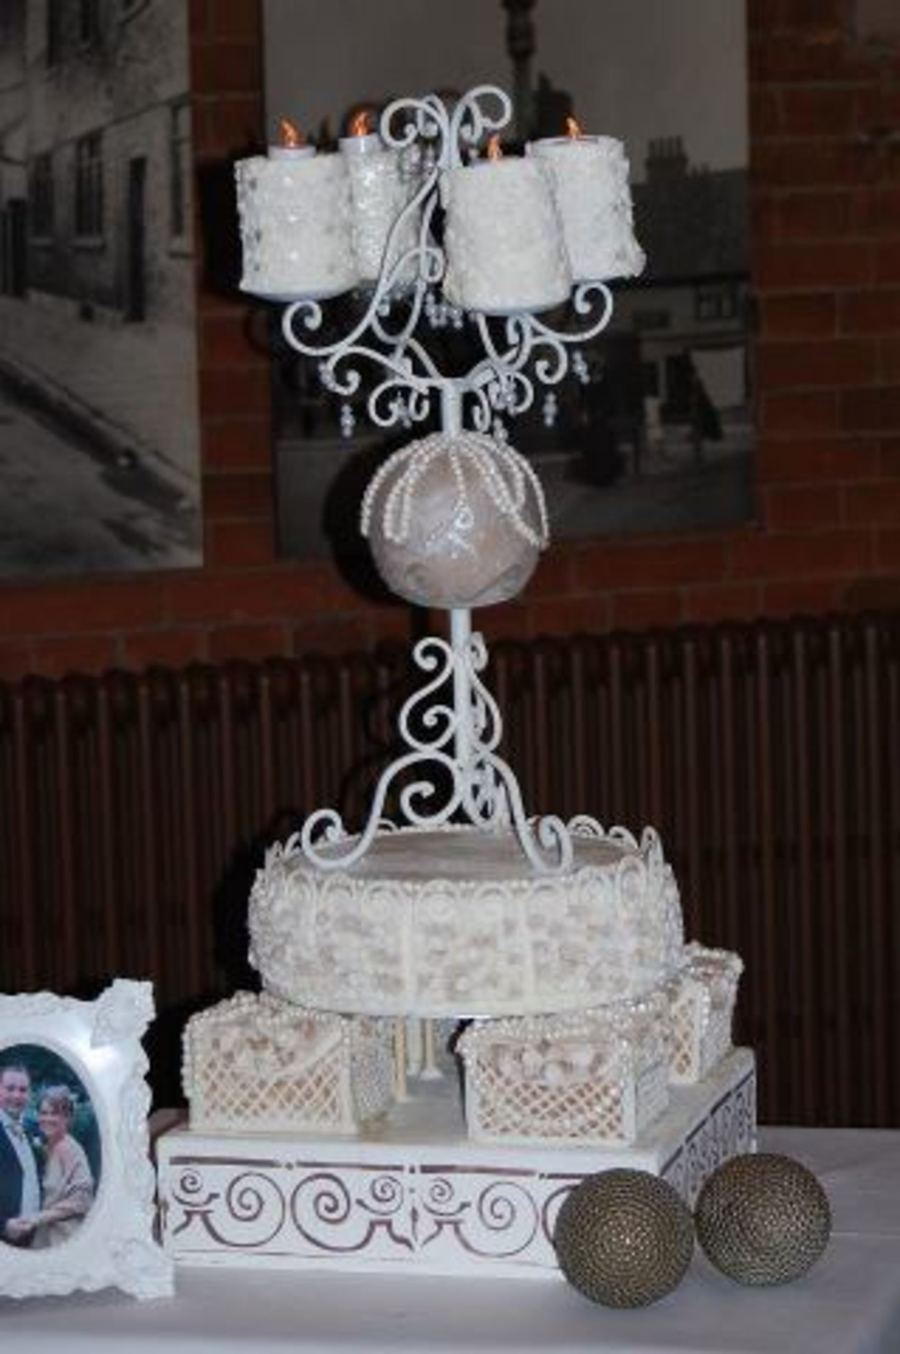 Shabby Chic Meets Gothic Splendour on Cake Central